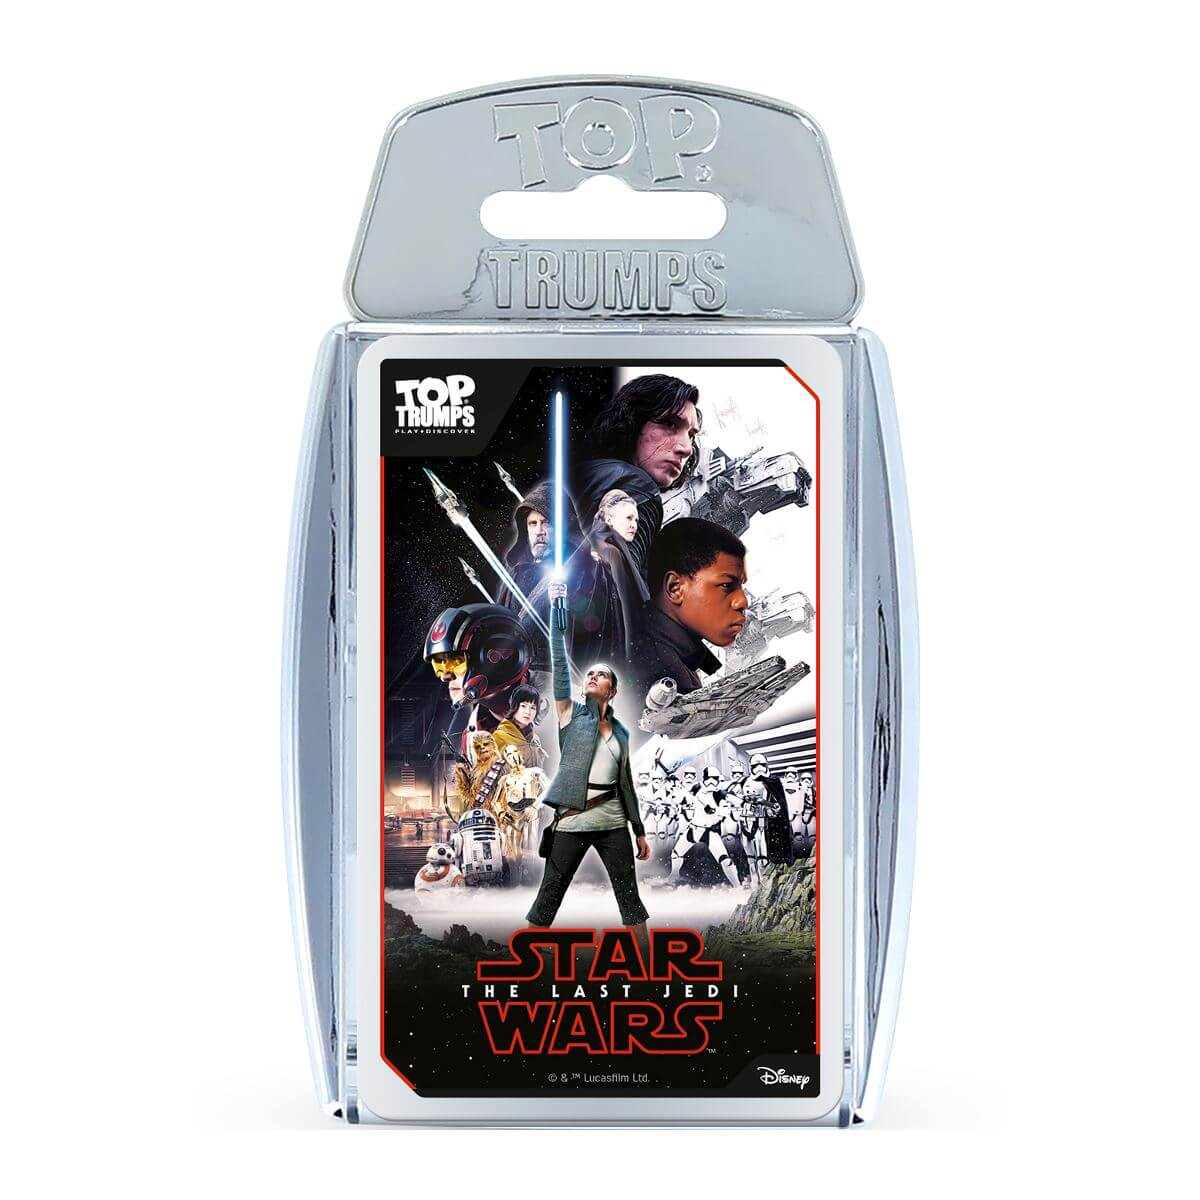 Image of Top Trumps Card Game - Star Wars Edition